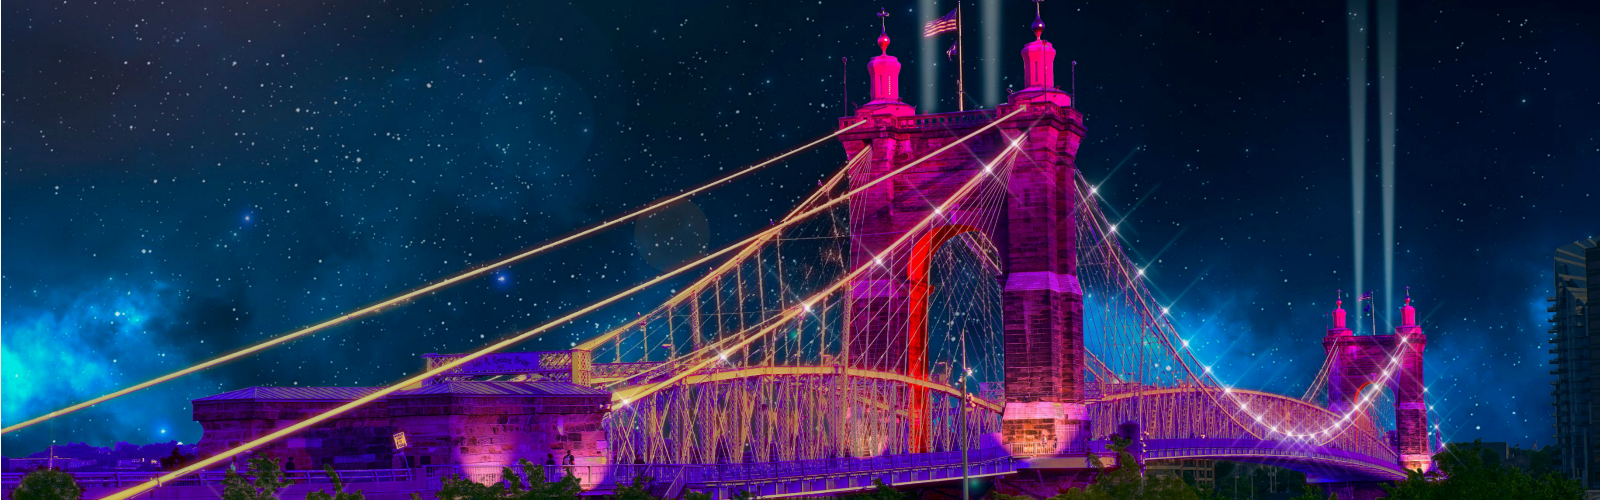 The Suspension Bridge will be lit up by an Erlanger-based company and set to music for Blink 2019.